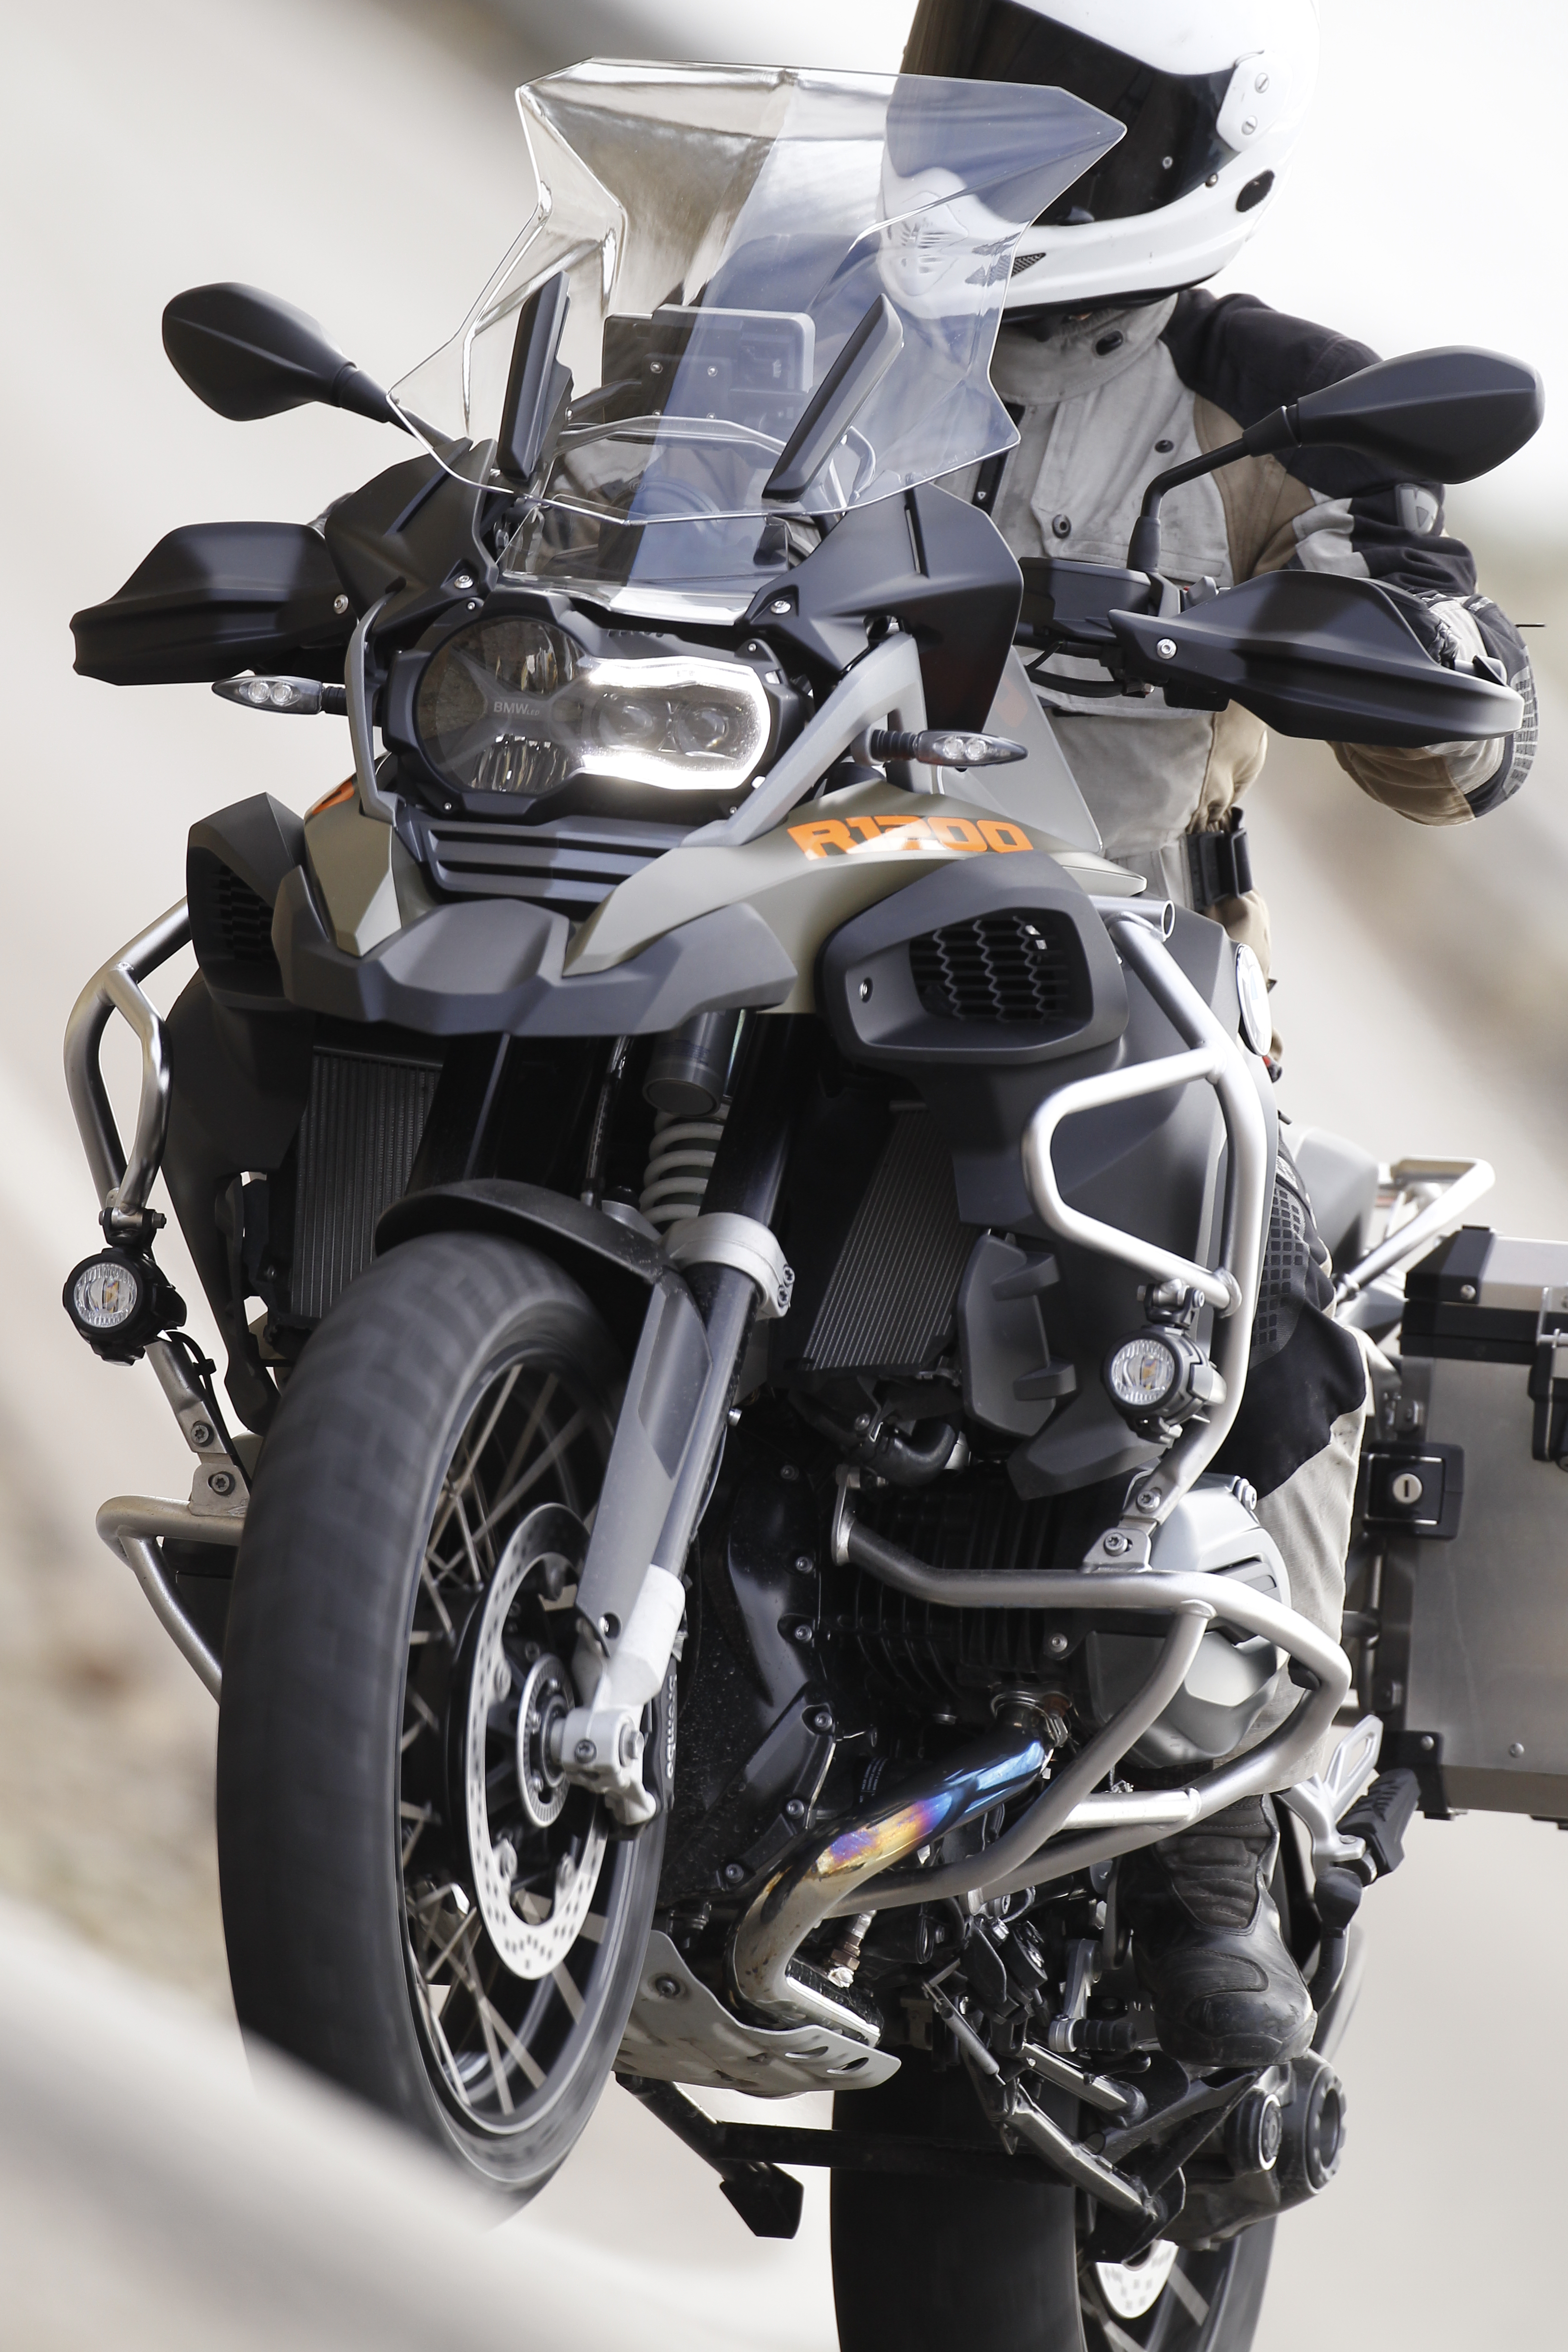 Bmw R1200gs Adventure Triple Black 2017 Review: First Ride: BMW R1200GS Adventure Review